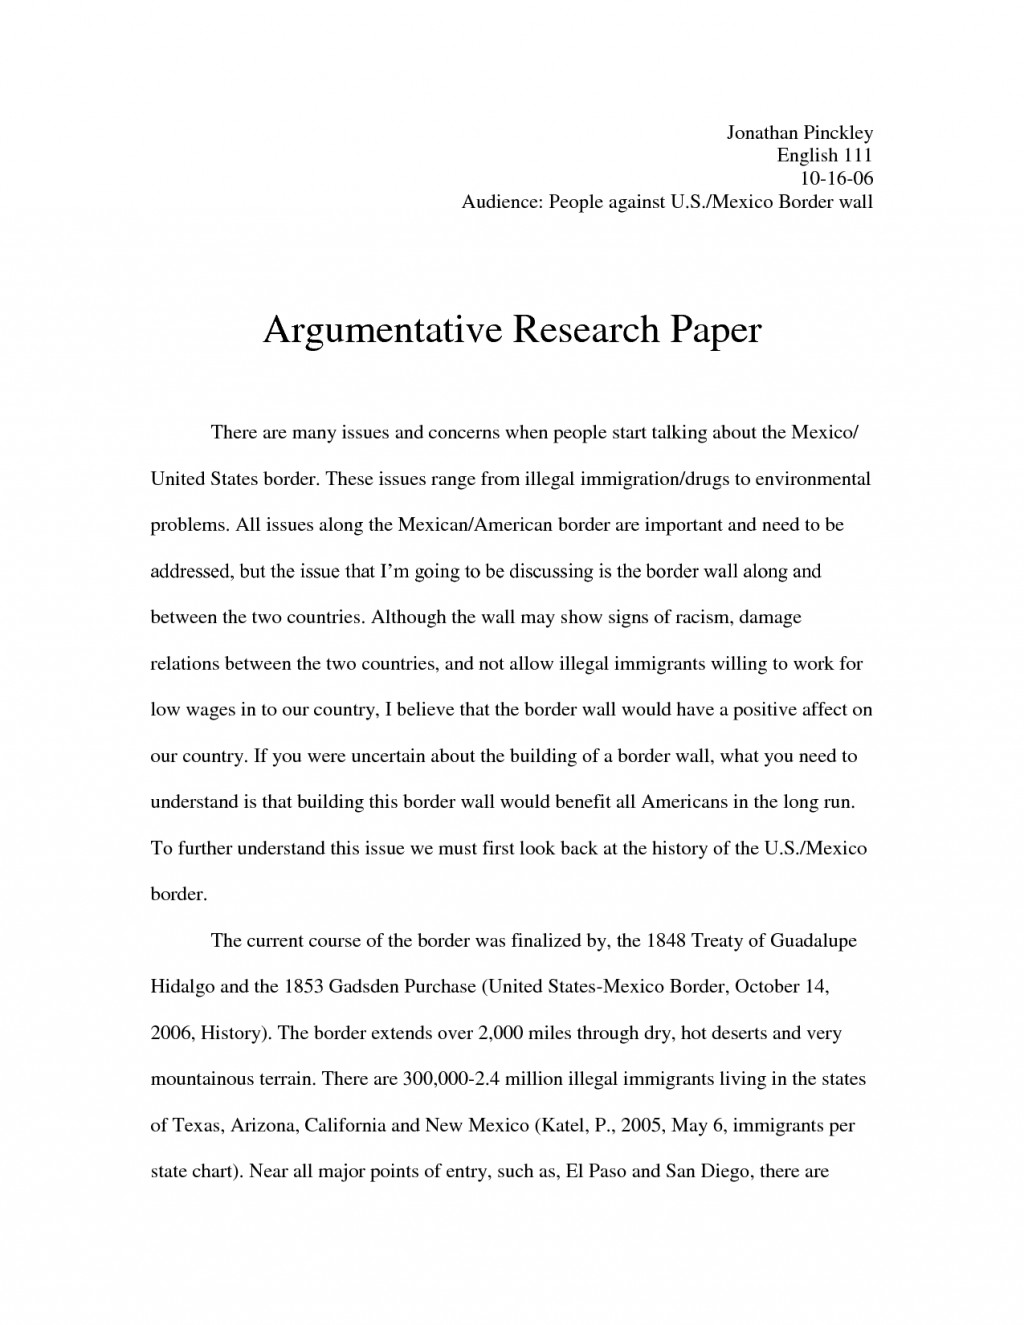 014 Uncategorized Debate20y Argumentative Thesis High School Topics Sentence Starters Outline Worksheet Structure20 For Research Rare A Paper Medical Large